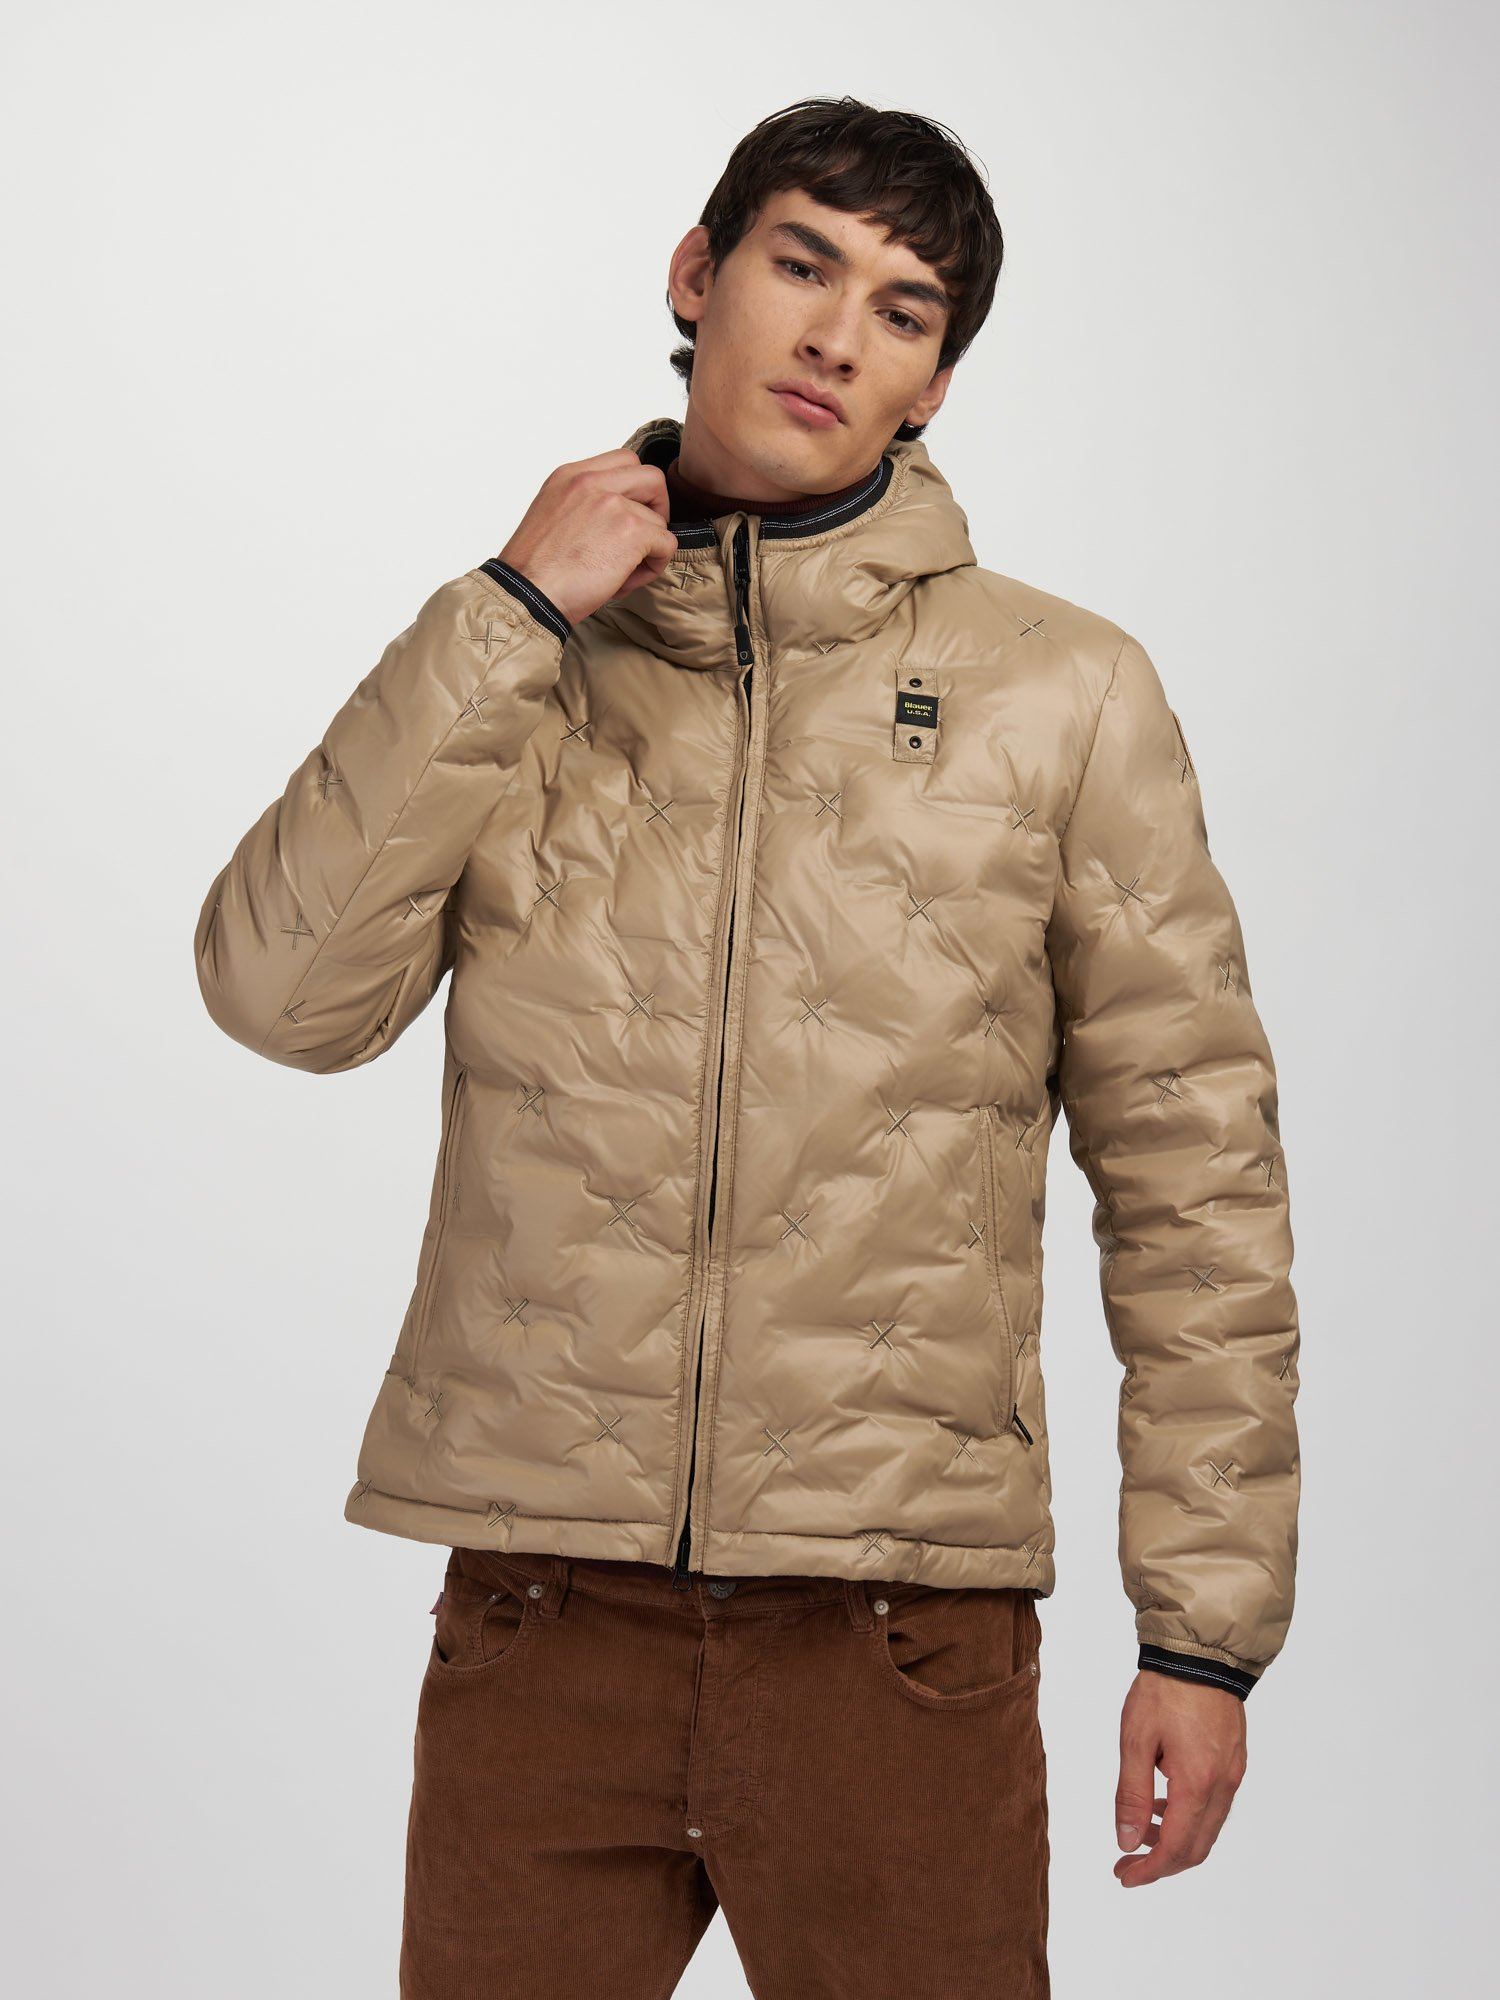 JEREMY DOWN JACKET WITH STAGGERED PATTERN - Blauer